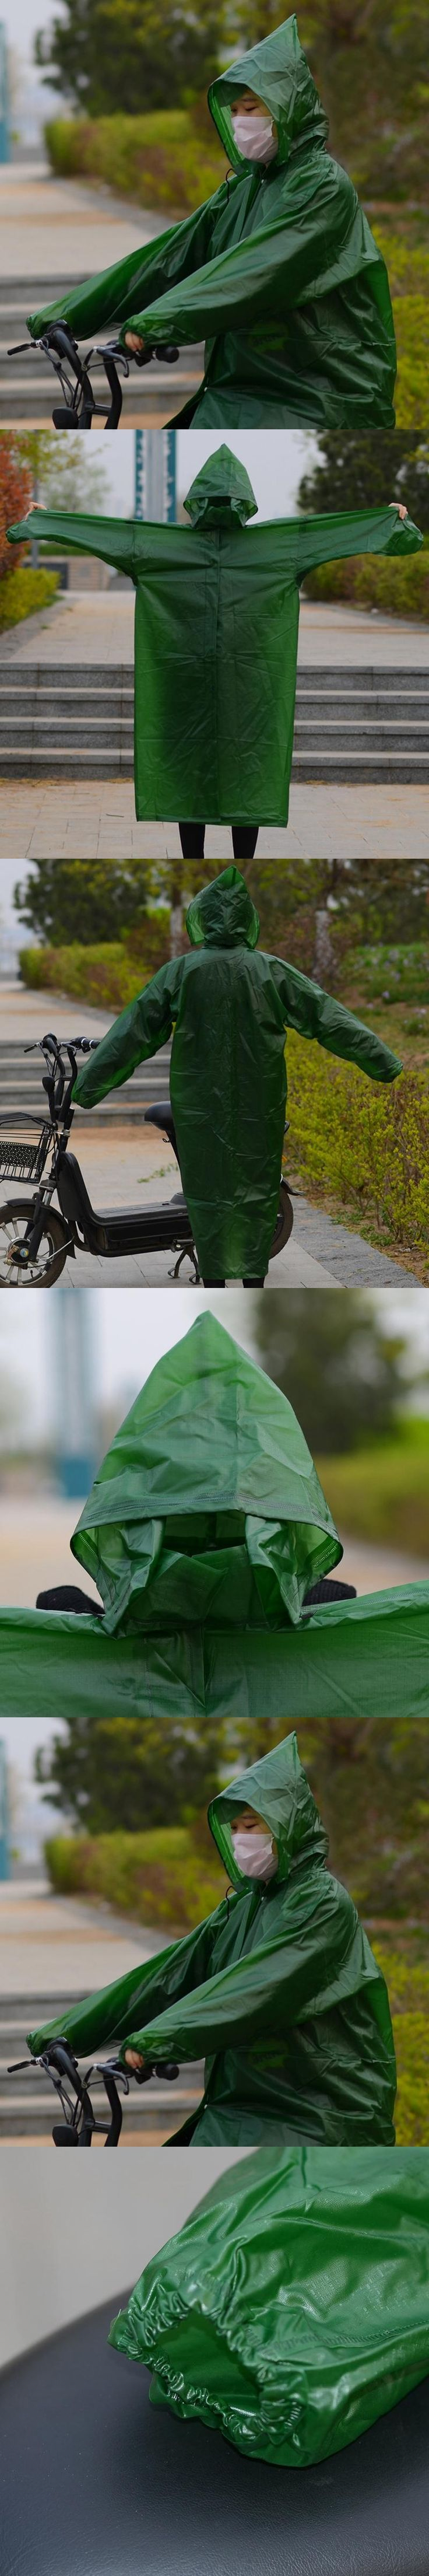 Long Raincoat Women Men Bicycle Scooter Rainwear Waterproof Hiking Tour Hooded Rain Jacket Women Universal Poncho